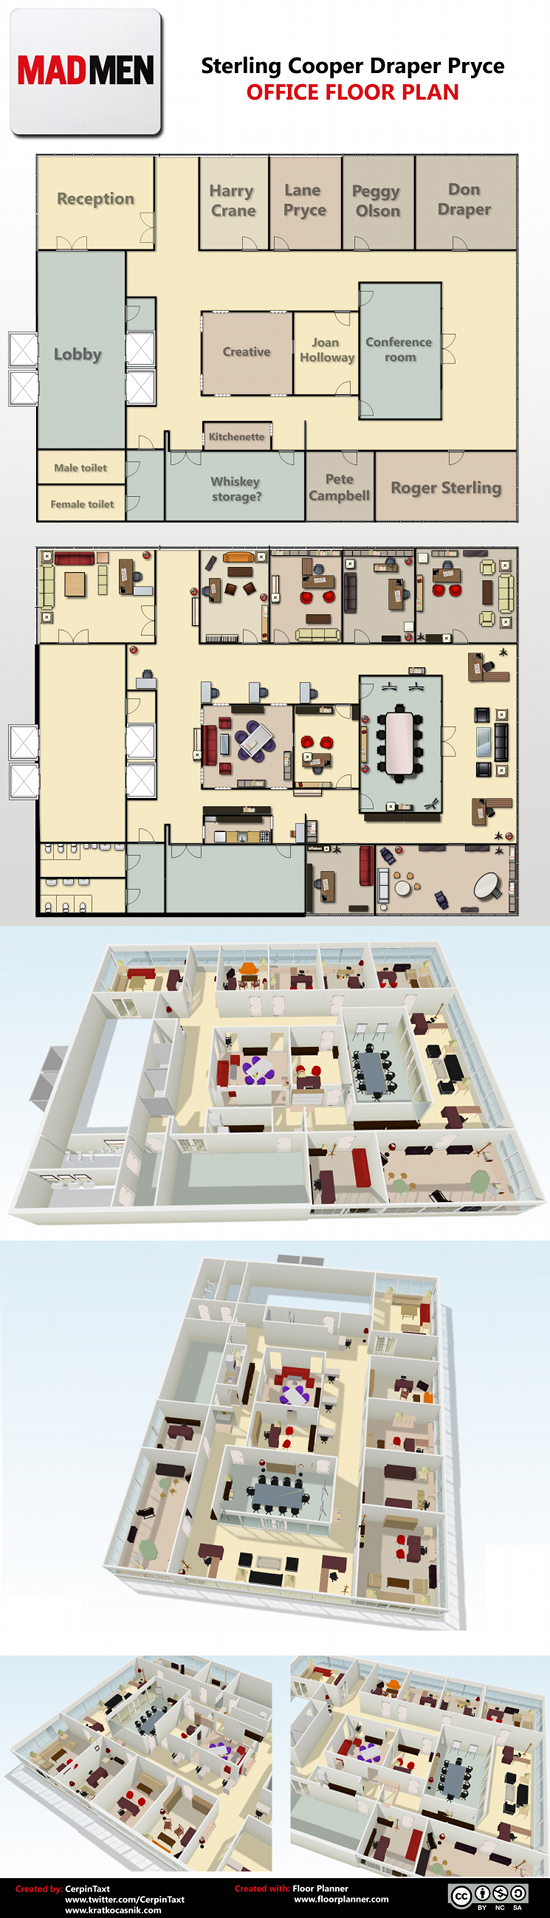 Mad Men Office Floor Plan-resized